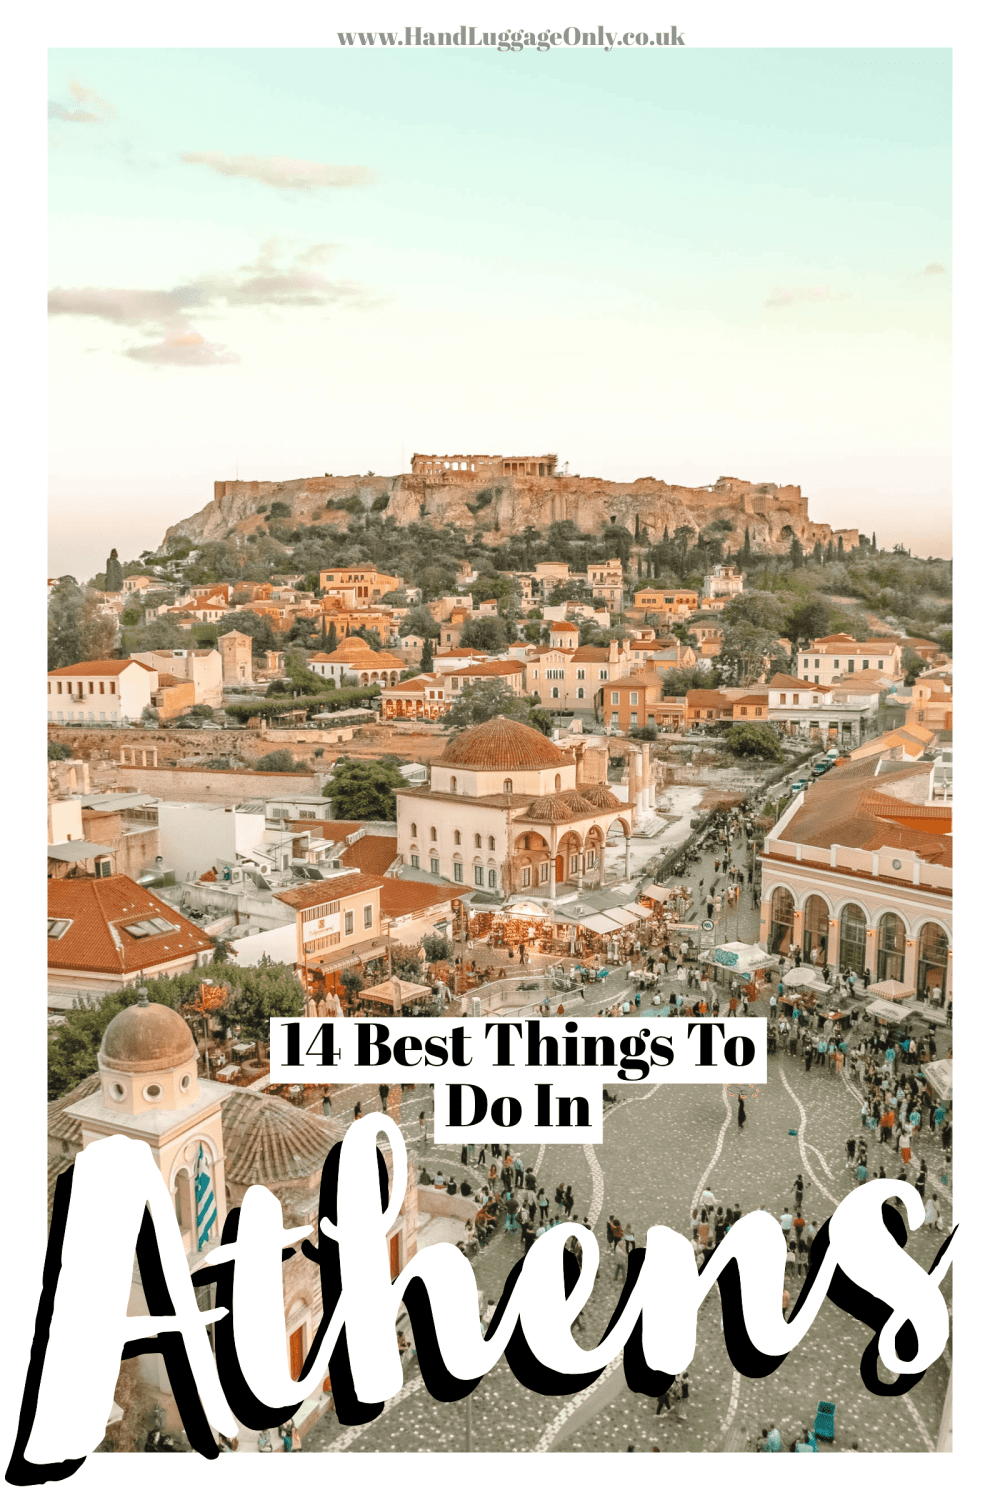 Best Things To Do In Athens (1)